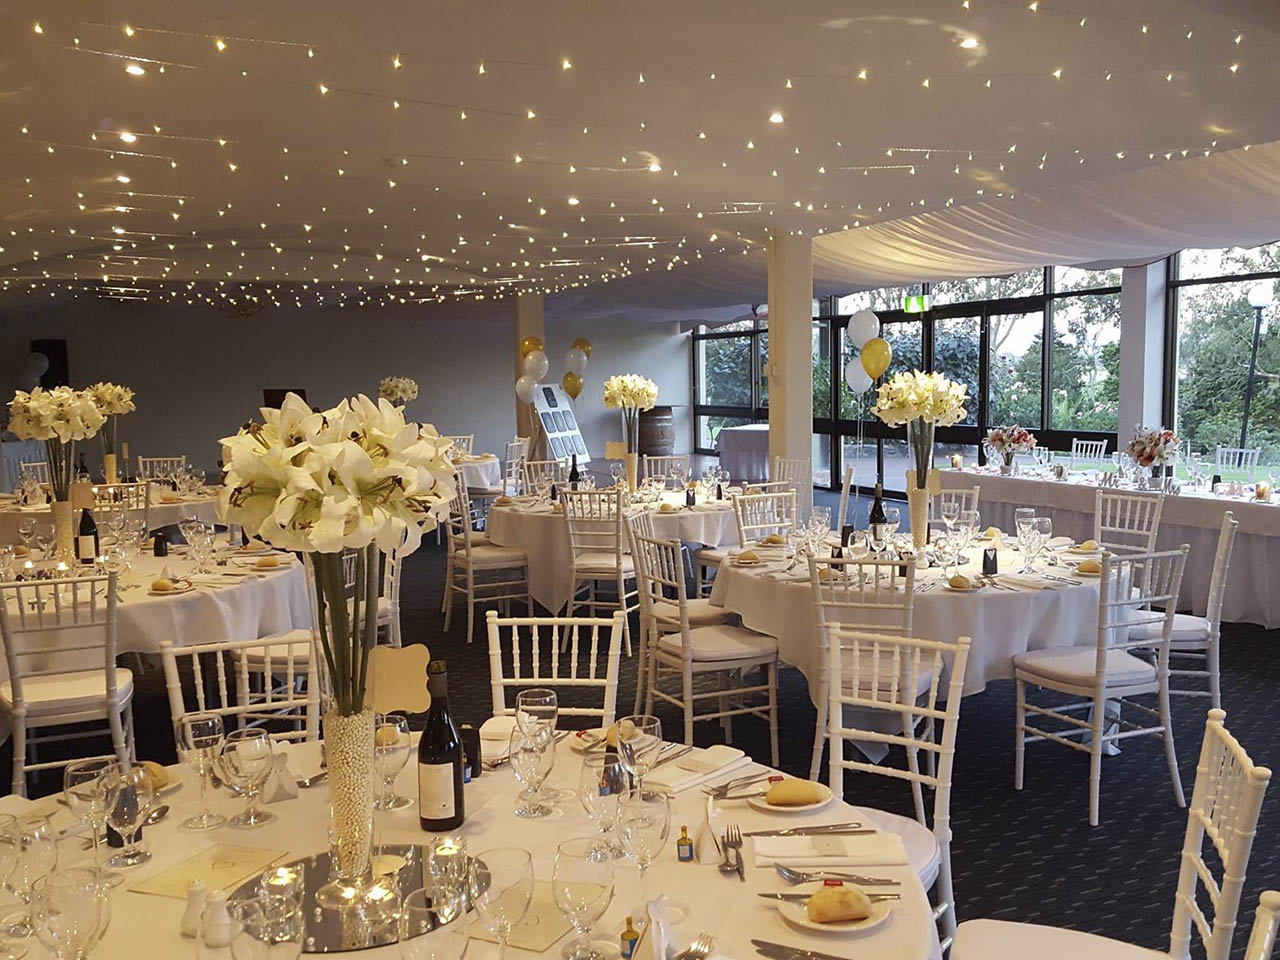 Beautiful wedding dining room setting with white tables, white lilies, balloons in the background and spotlights on ceiling overlooking greenery